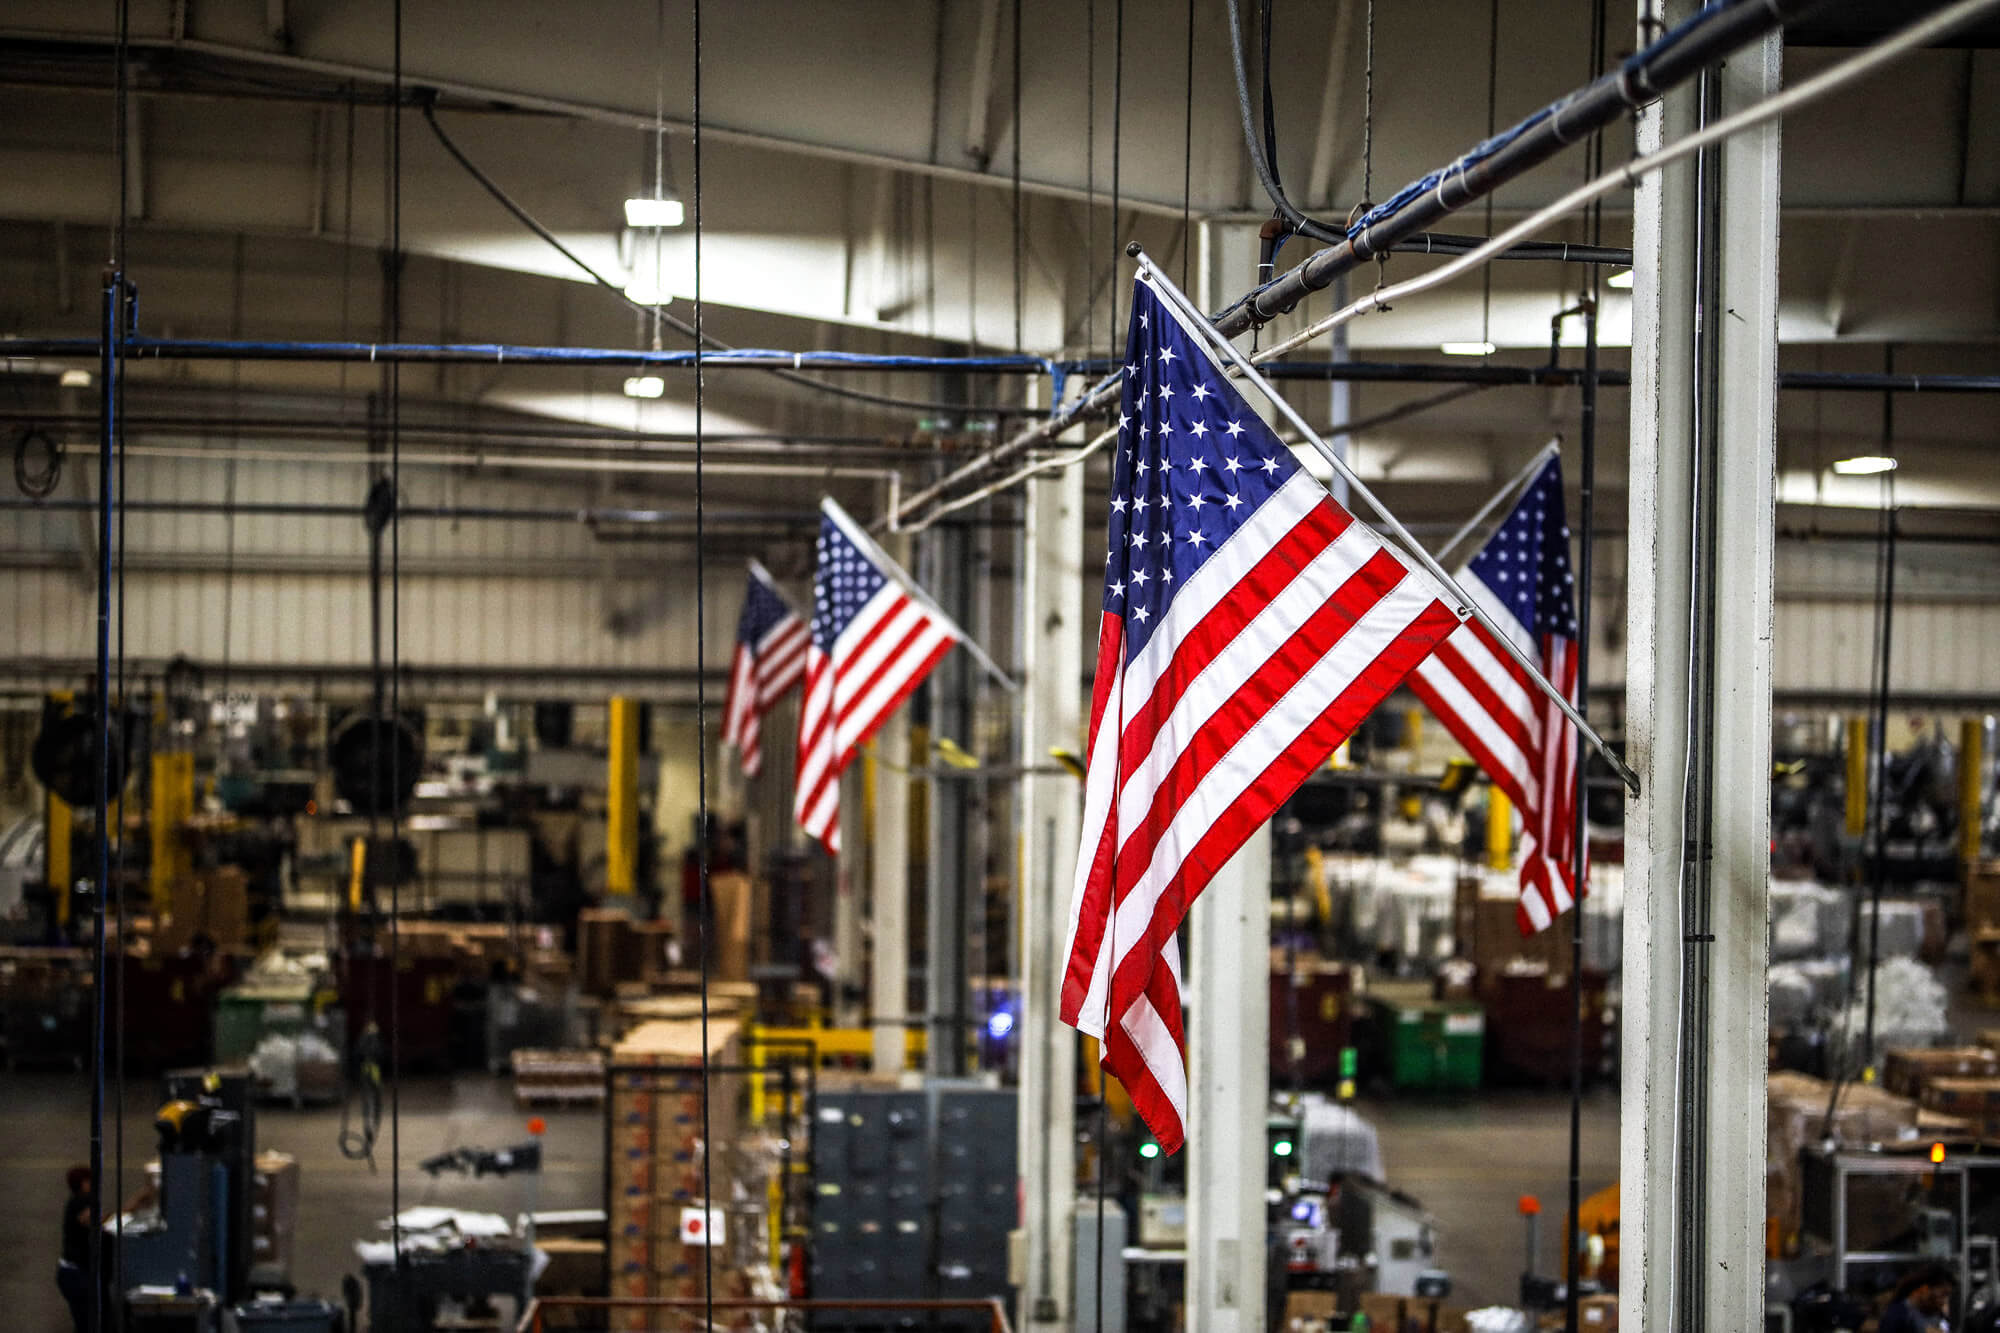 American Flags in Warehouse